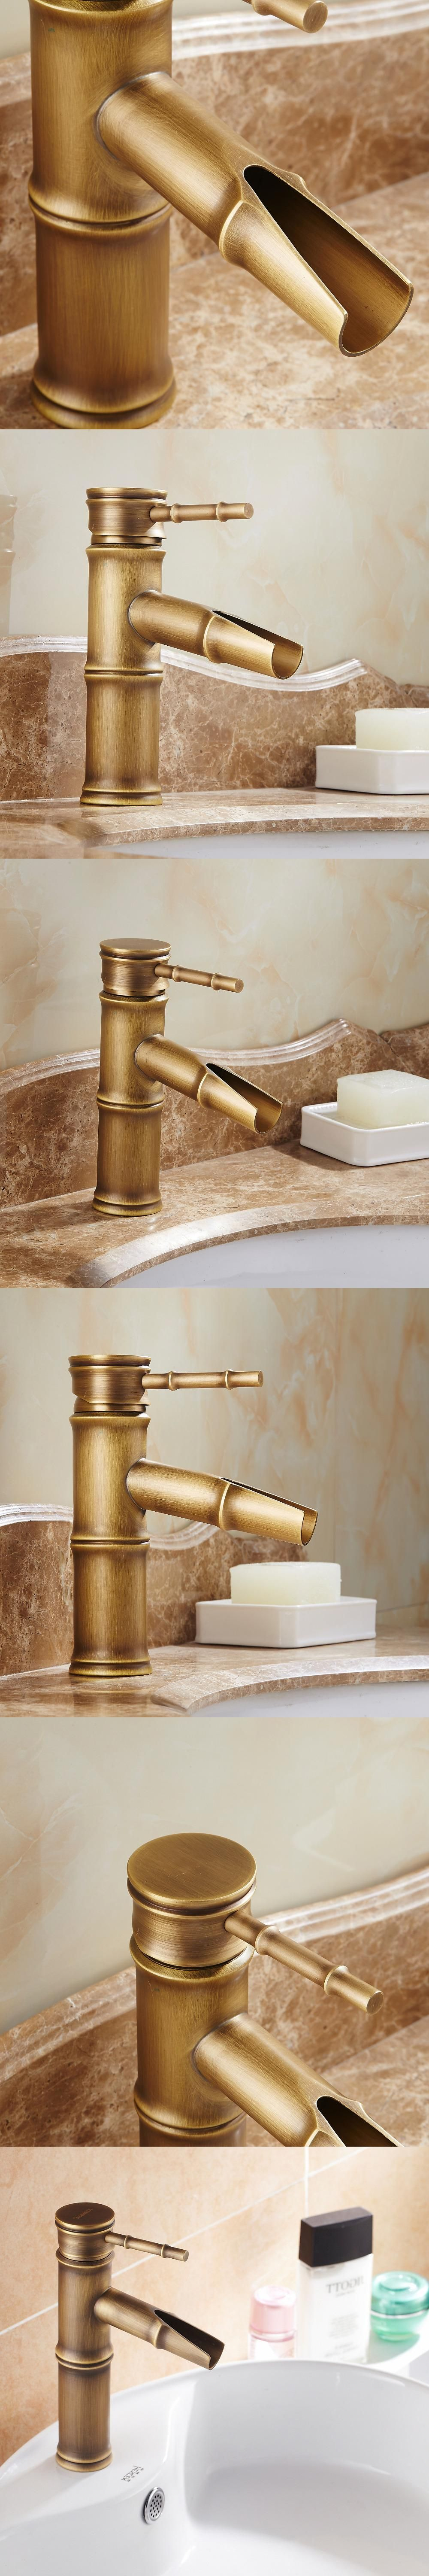 profile with pin mounted boulevard metal low result hole sink lever for three faucets brass image faucet lavatory handles deck